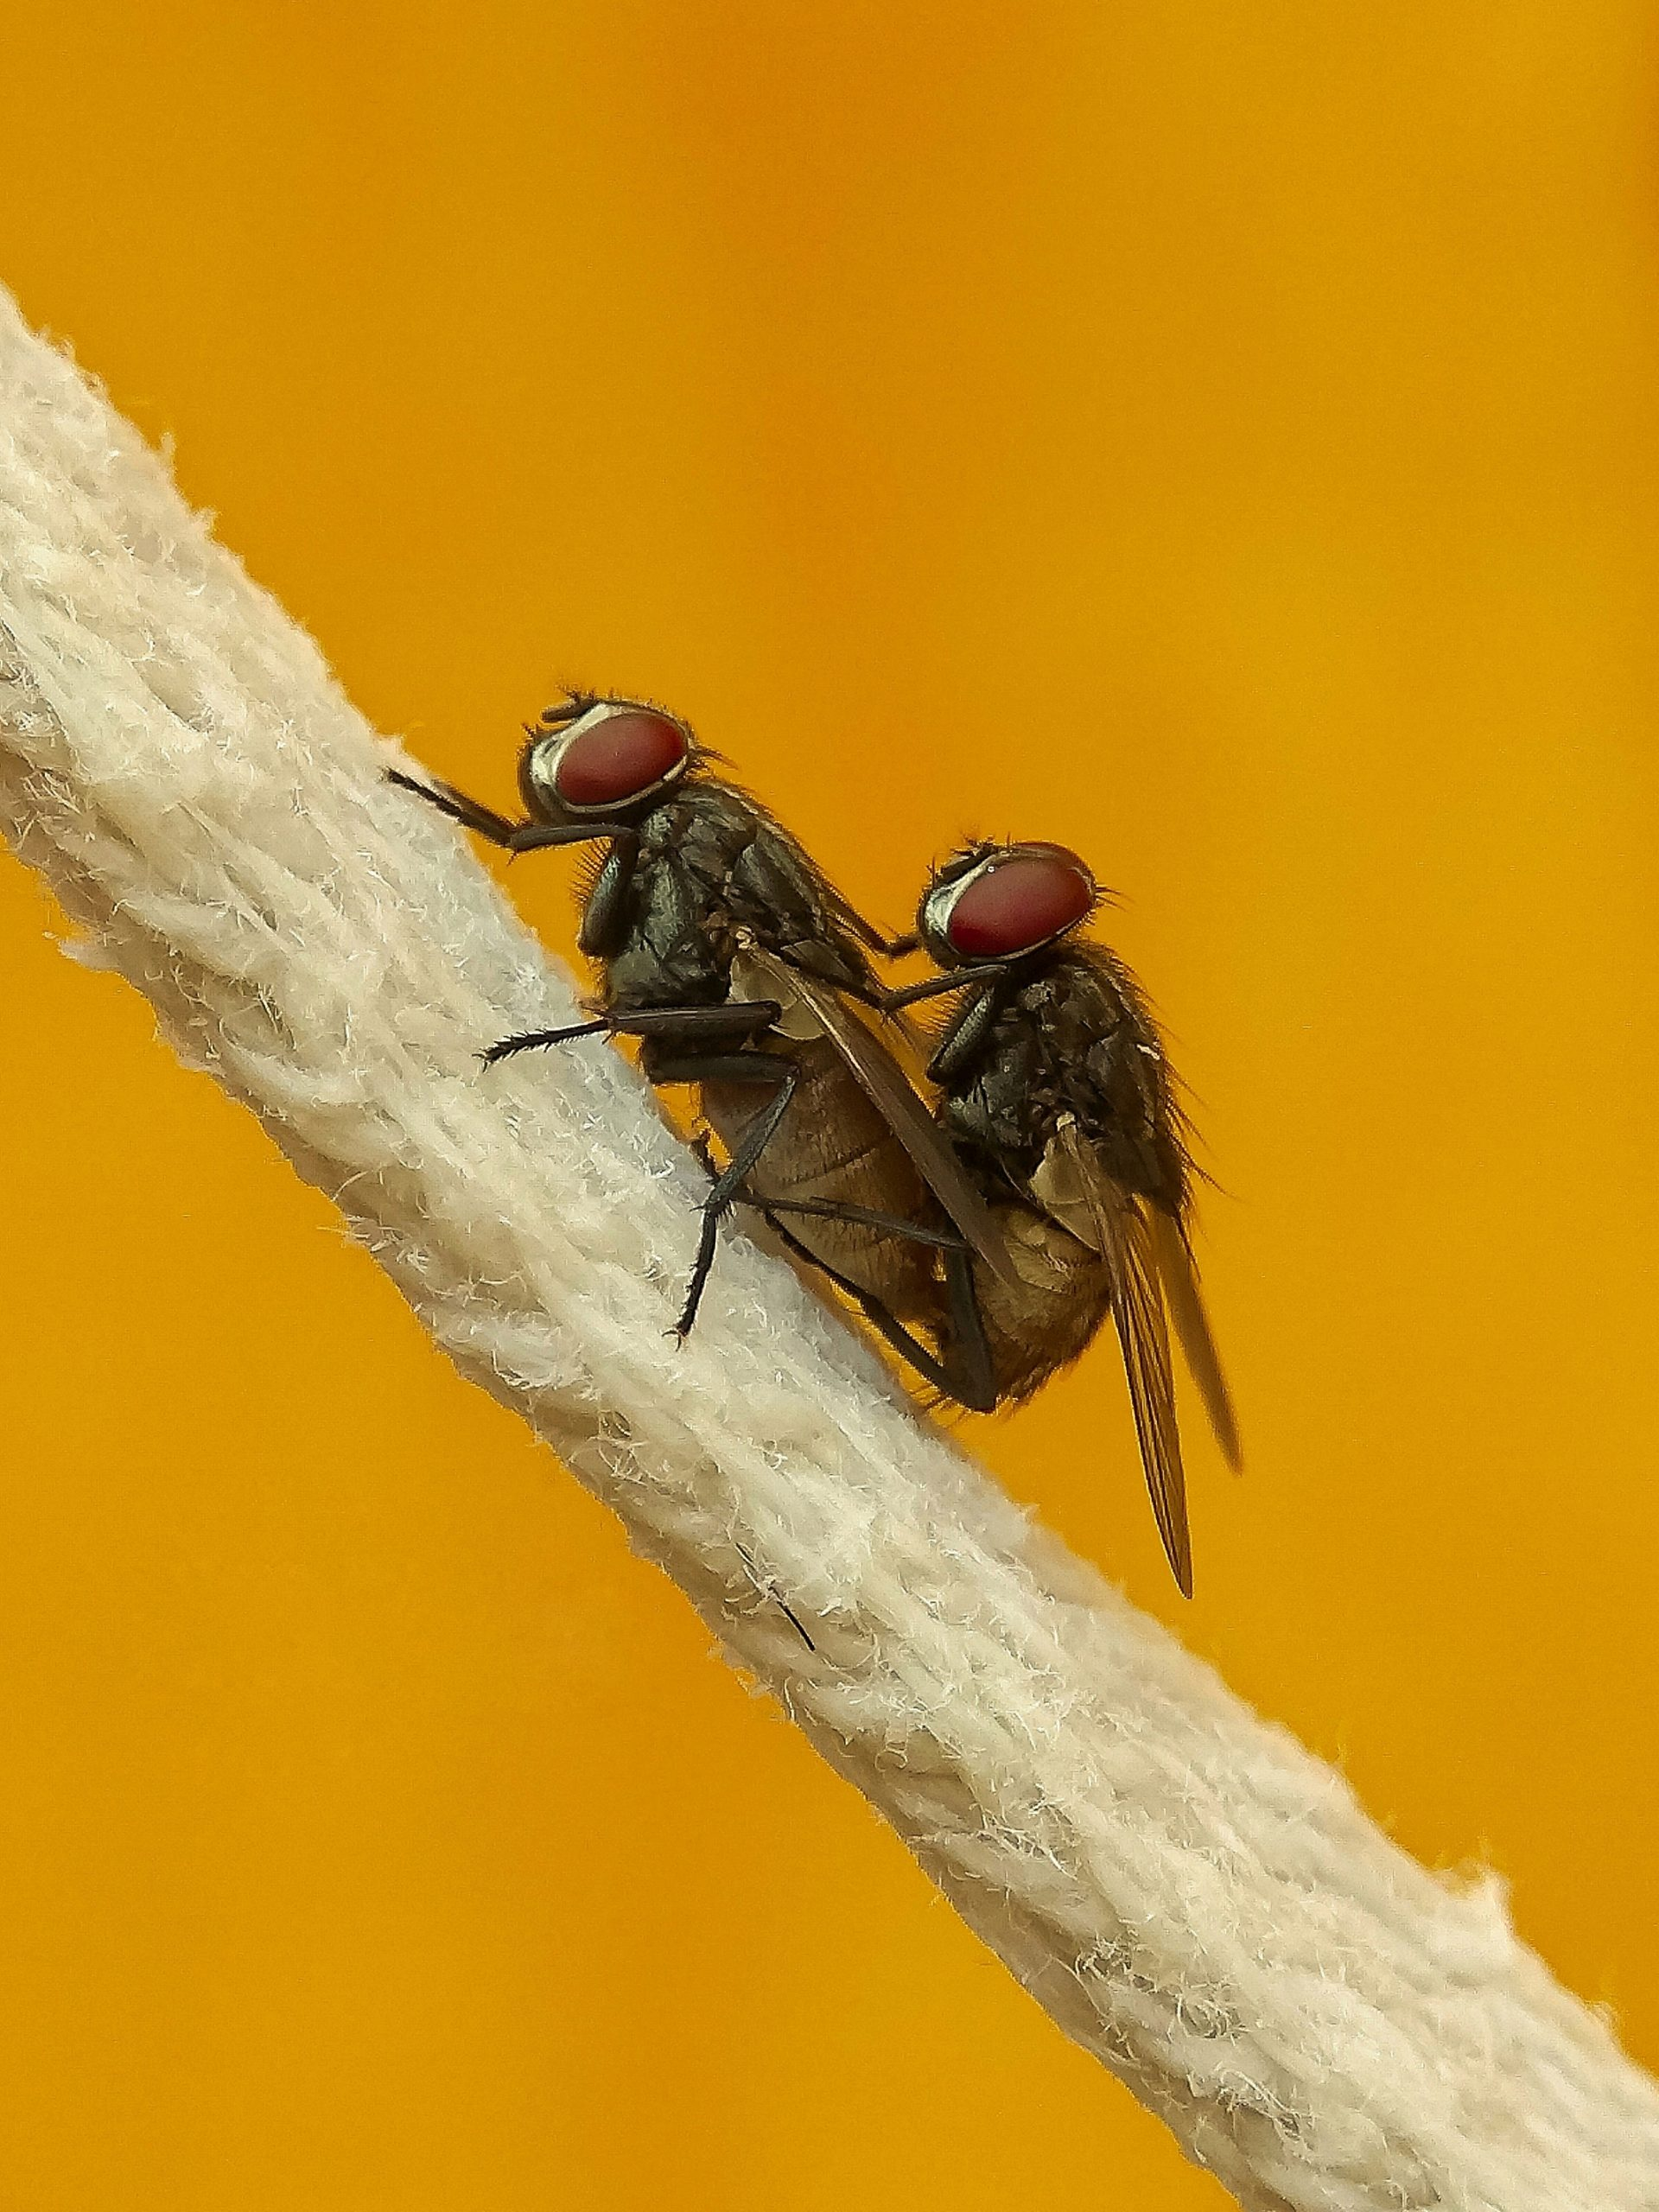 Mating of common housefly